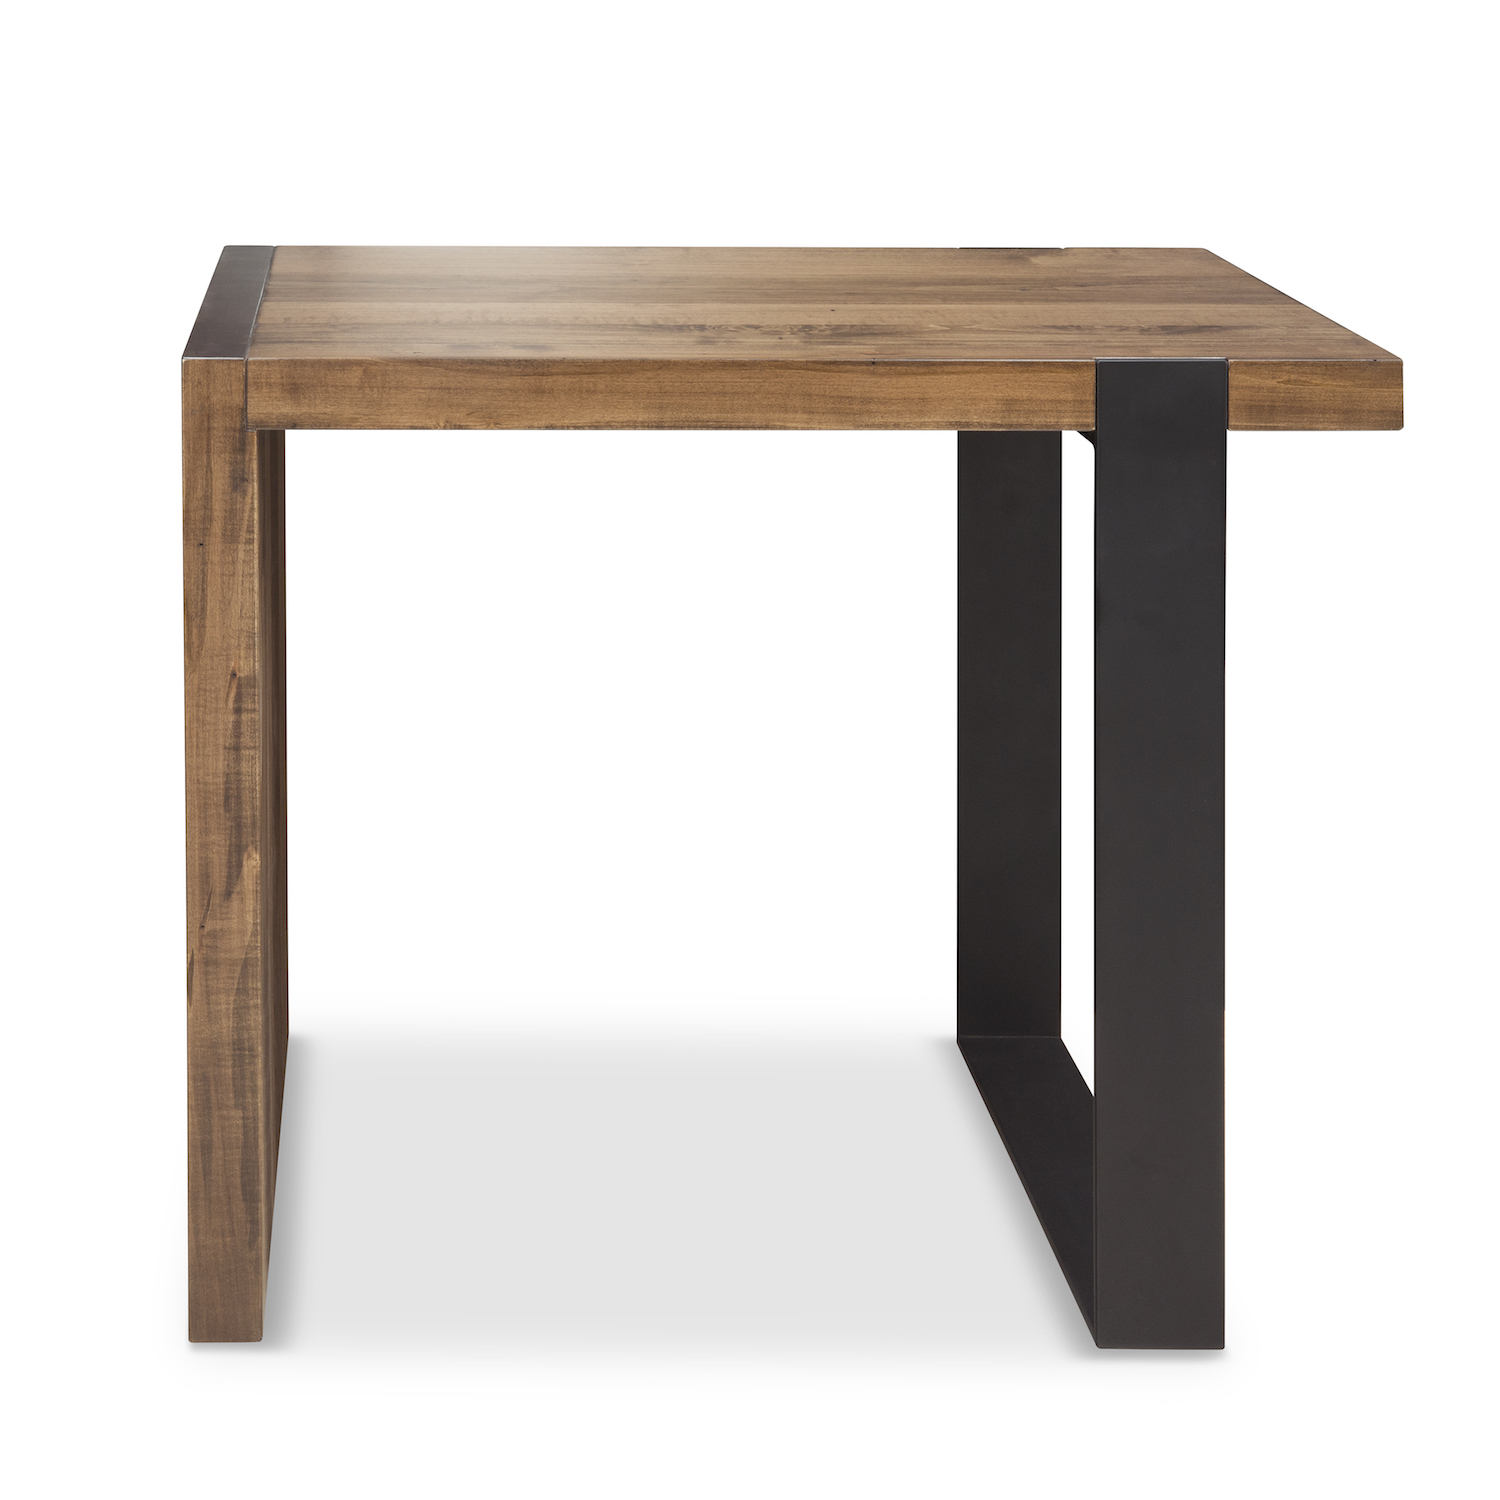 Parkdale_End_Table_Straight-1.jpg